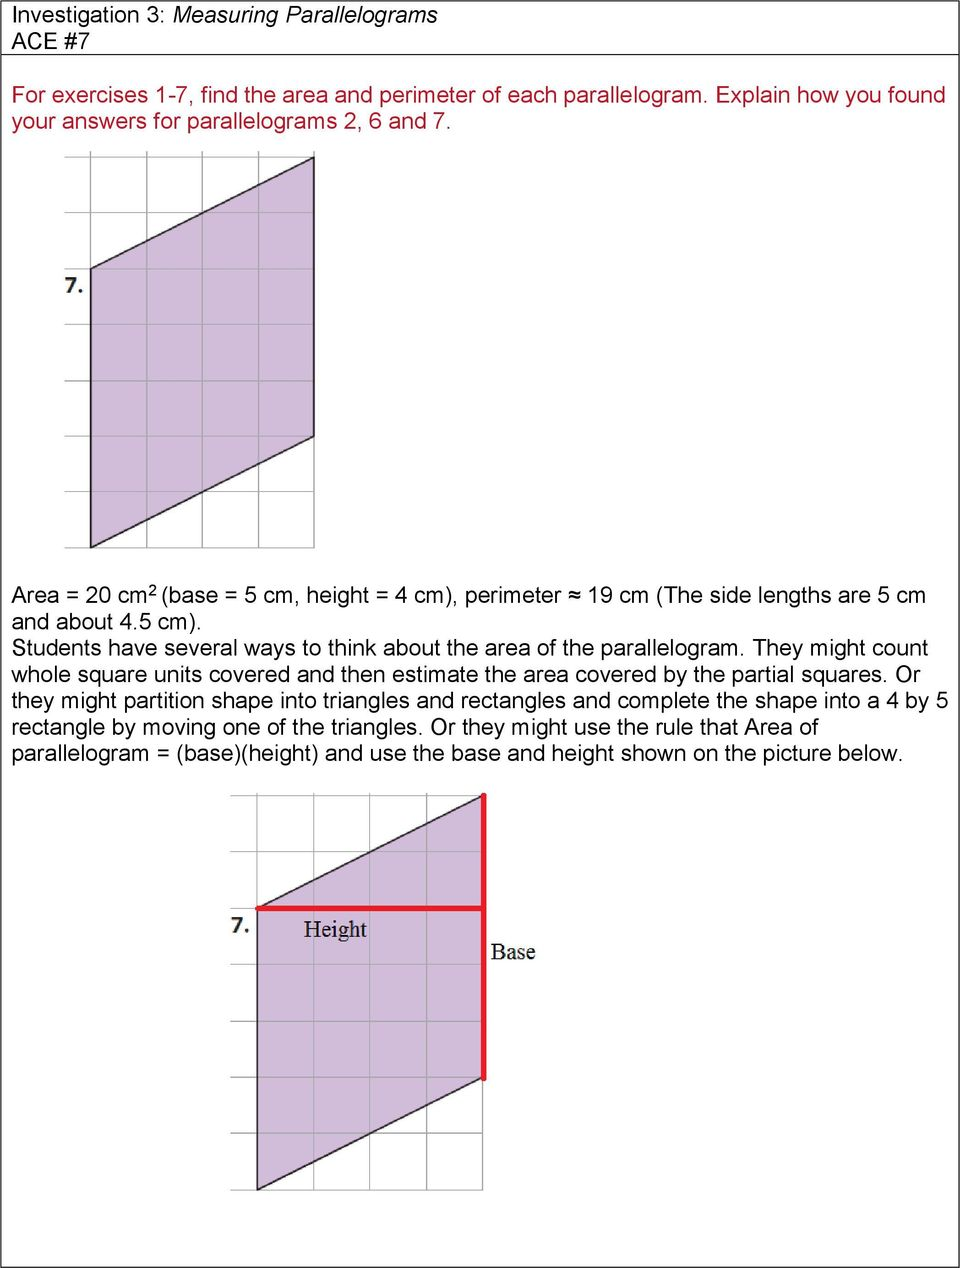 They might count whole square units covered and then estimate the area covered by the partial squares.